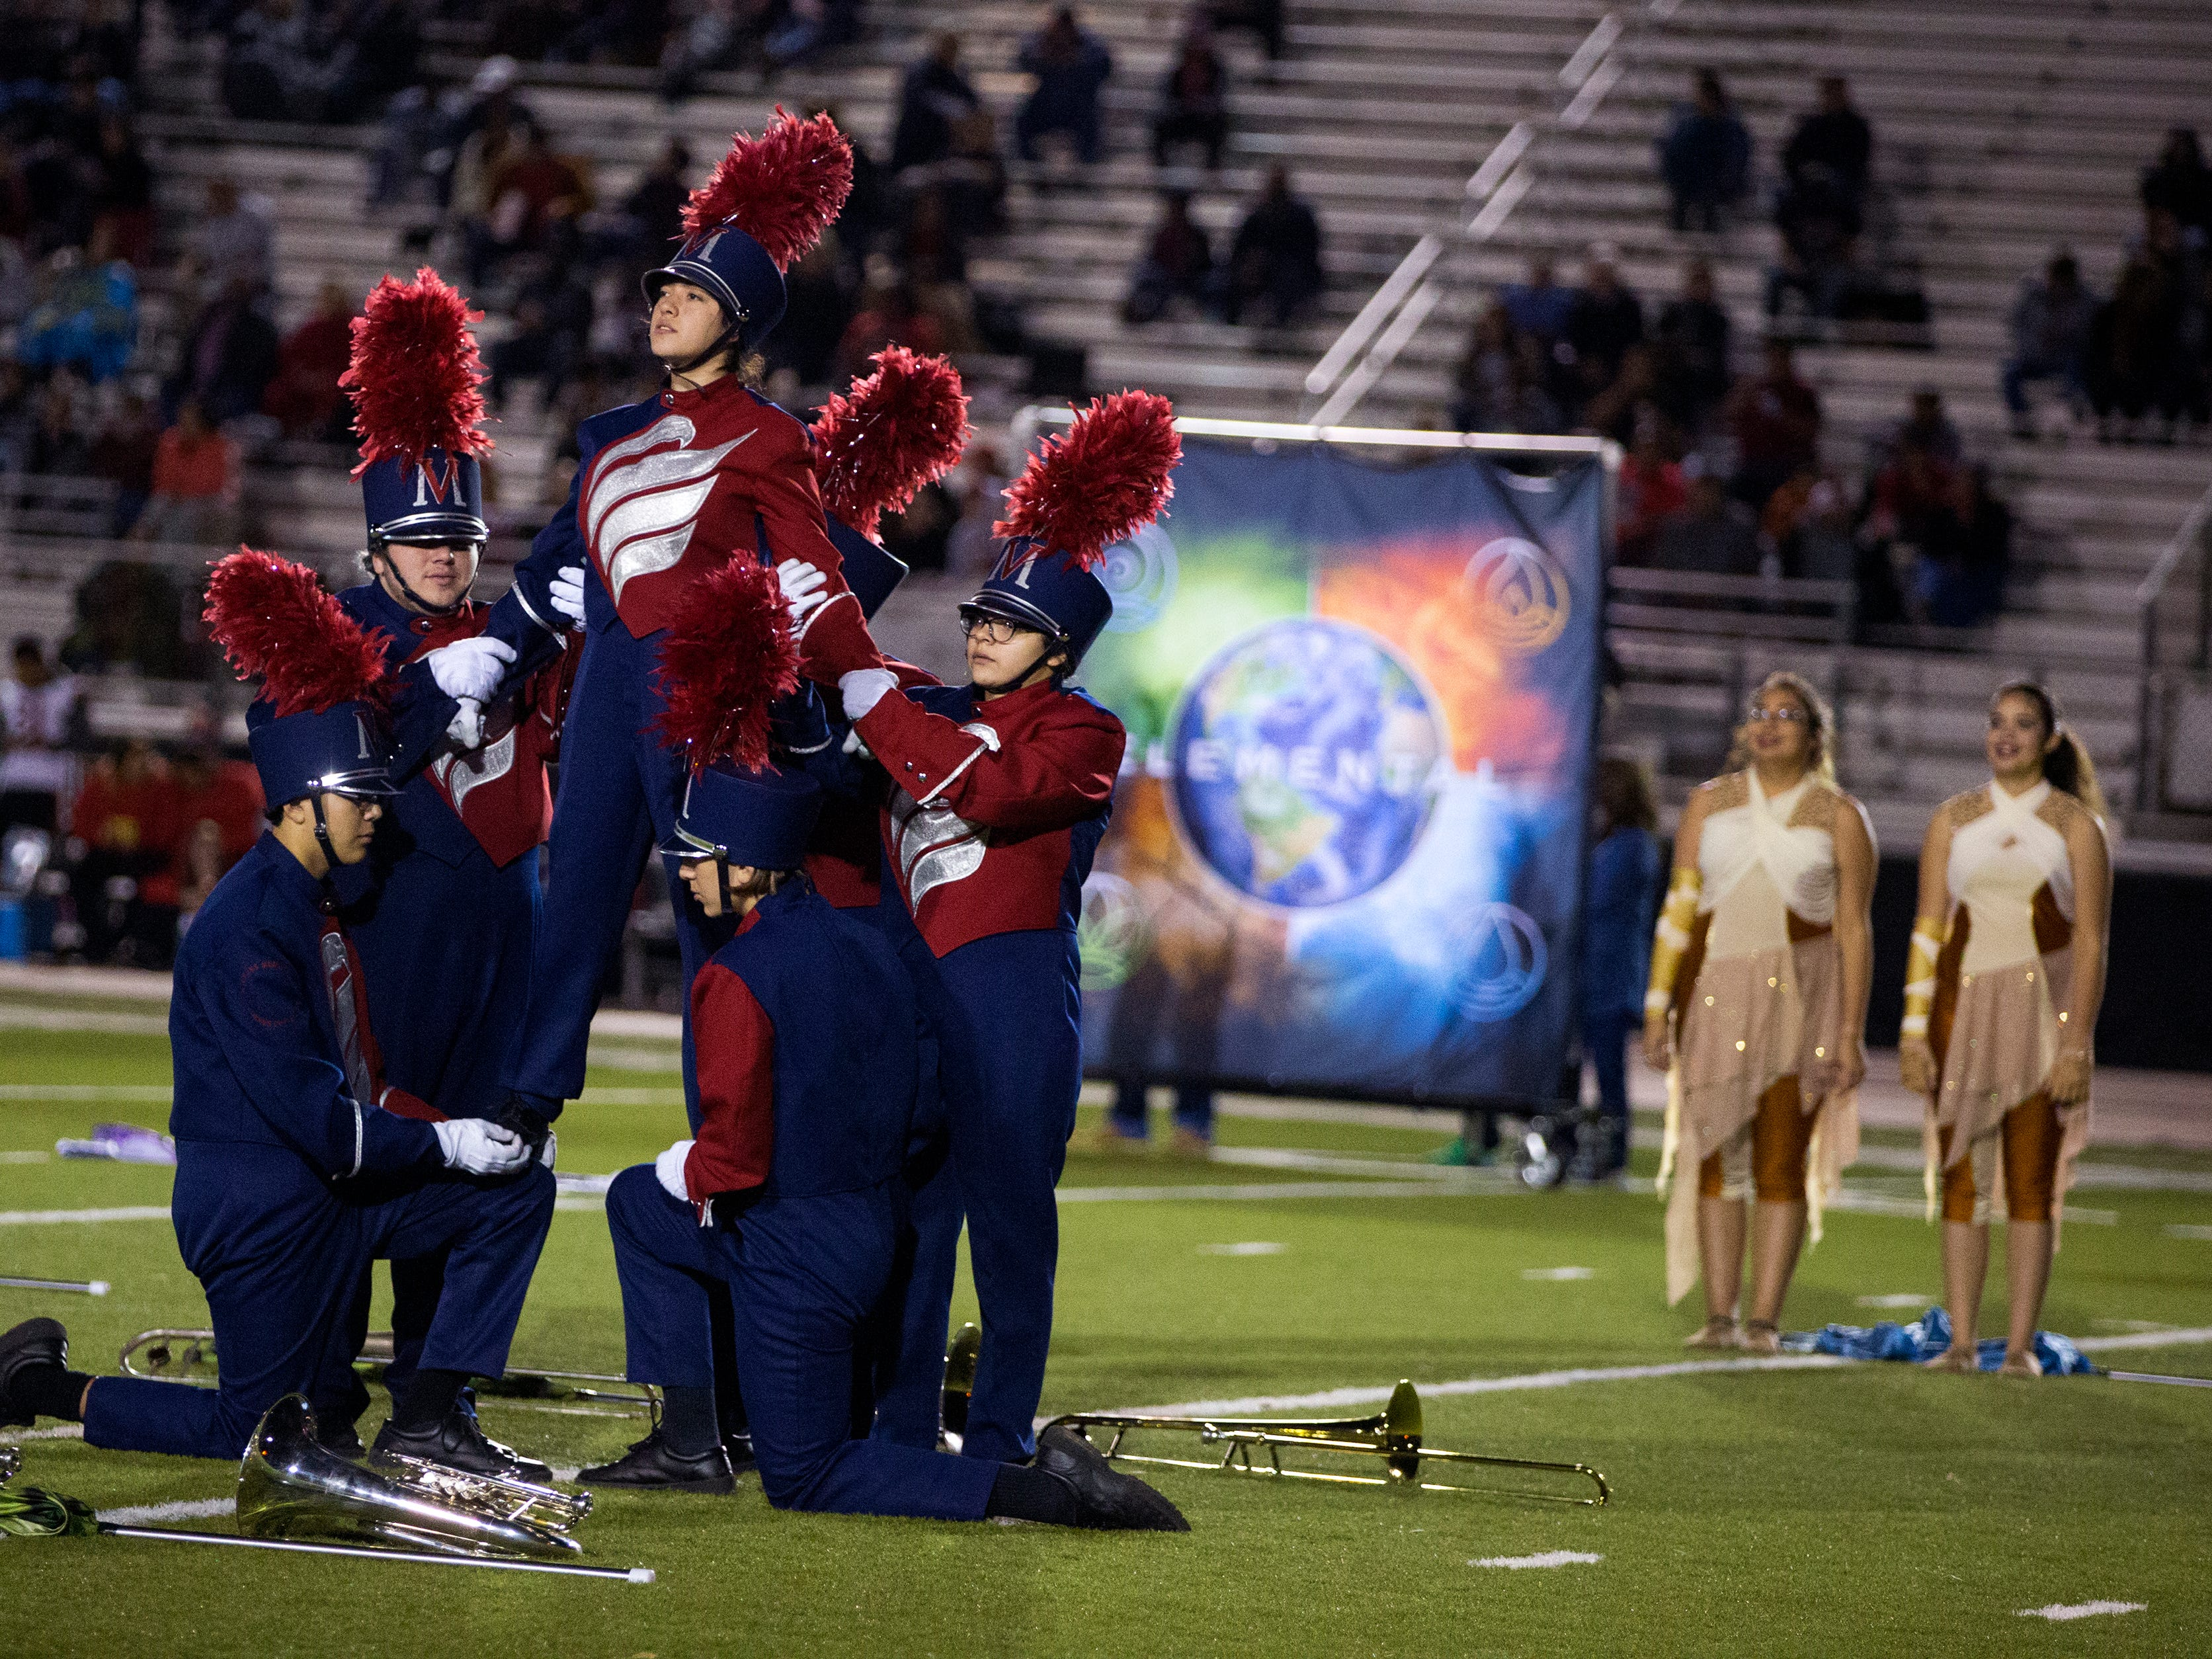 Members of the Veterans Memorial High School Screaming Eagle Band preform during halftime of the Veterans Memorial and Victoria West football game at Cabaniss Field on Friday, November 2, 2018.